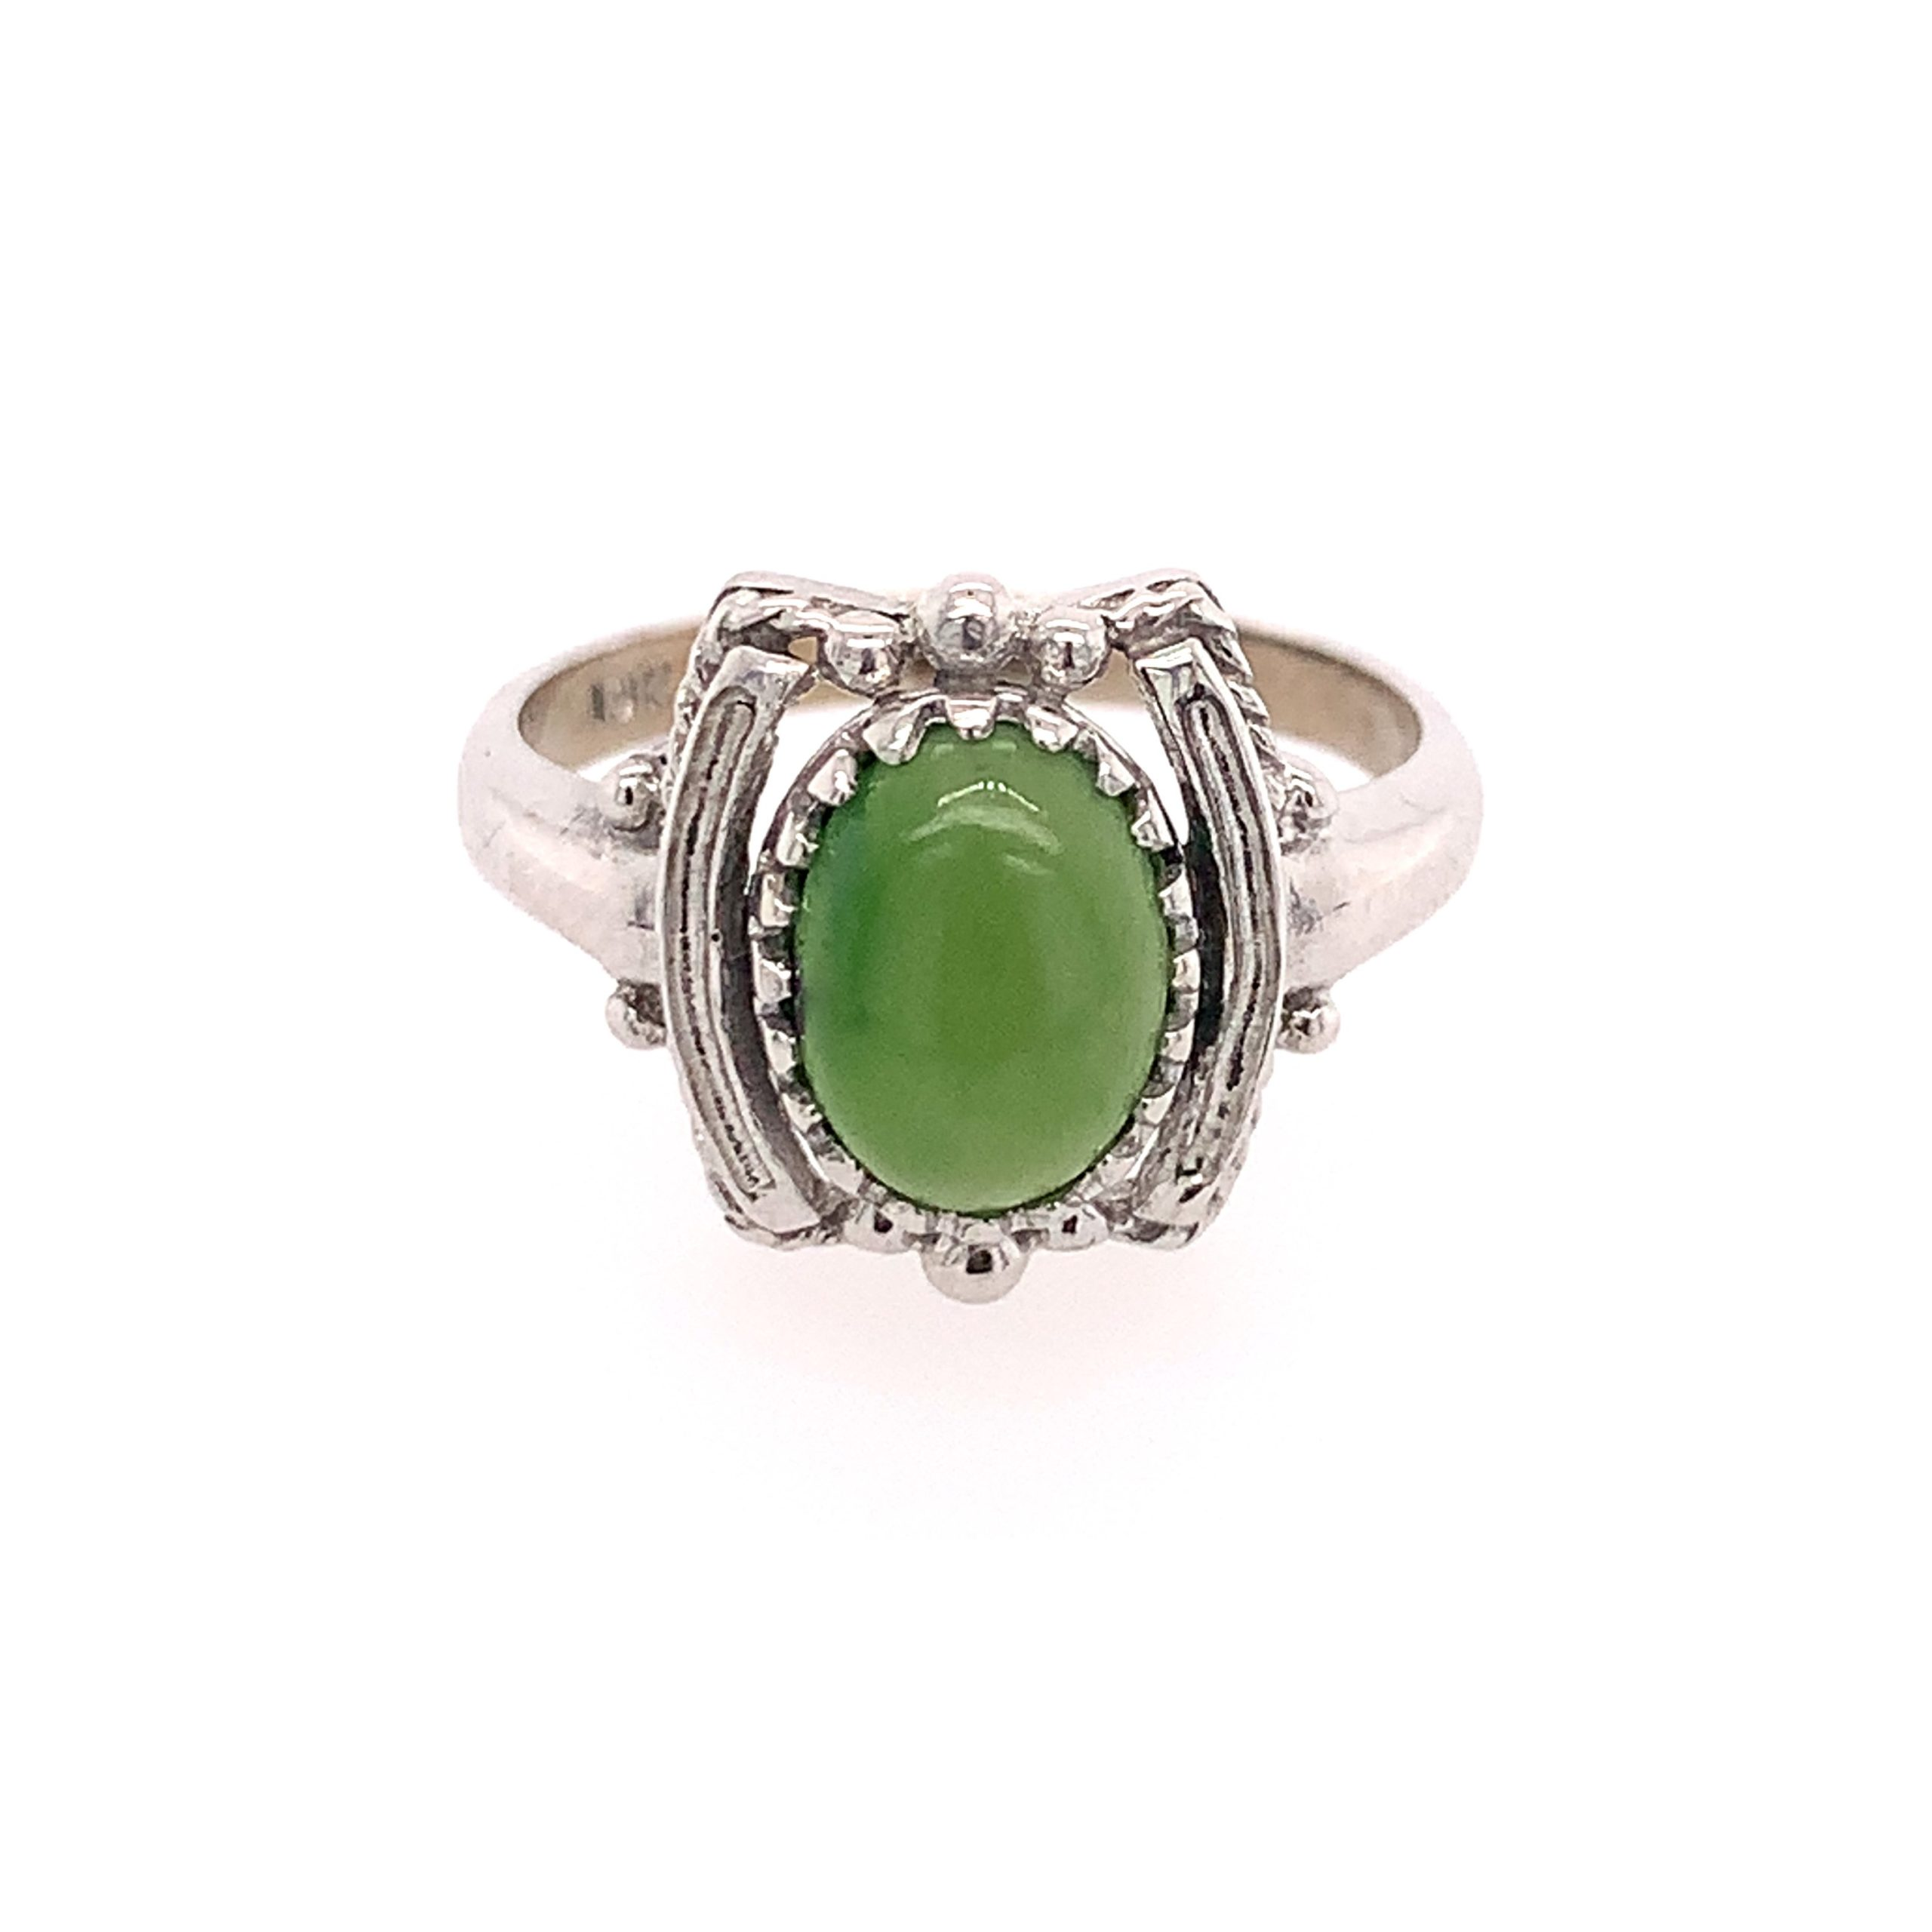 Estate Piece - White Gold Ring With Oval Green Stone